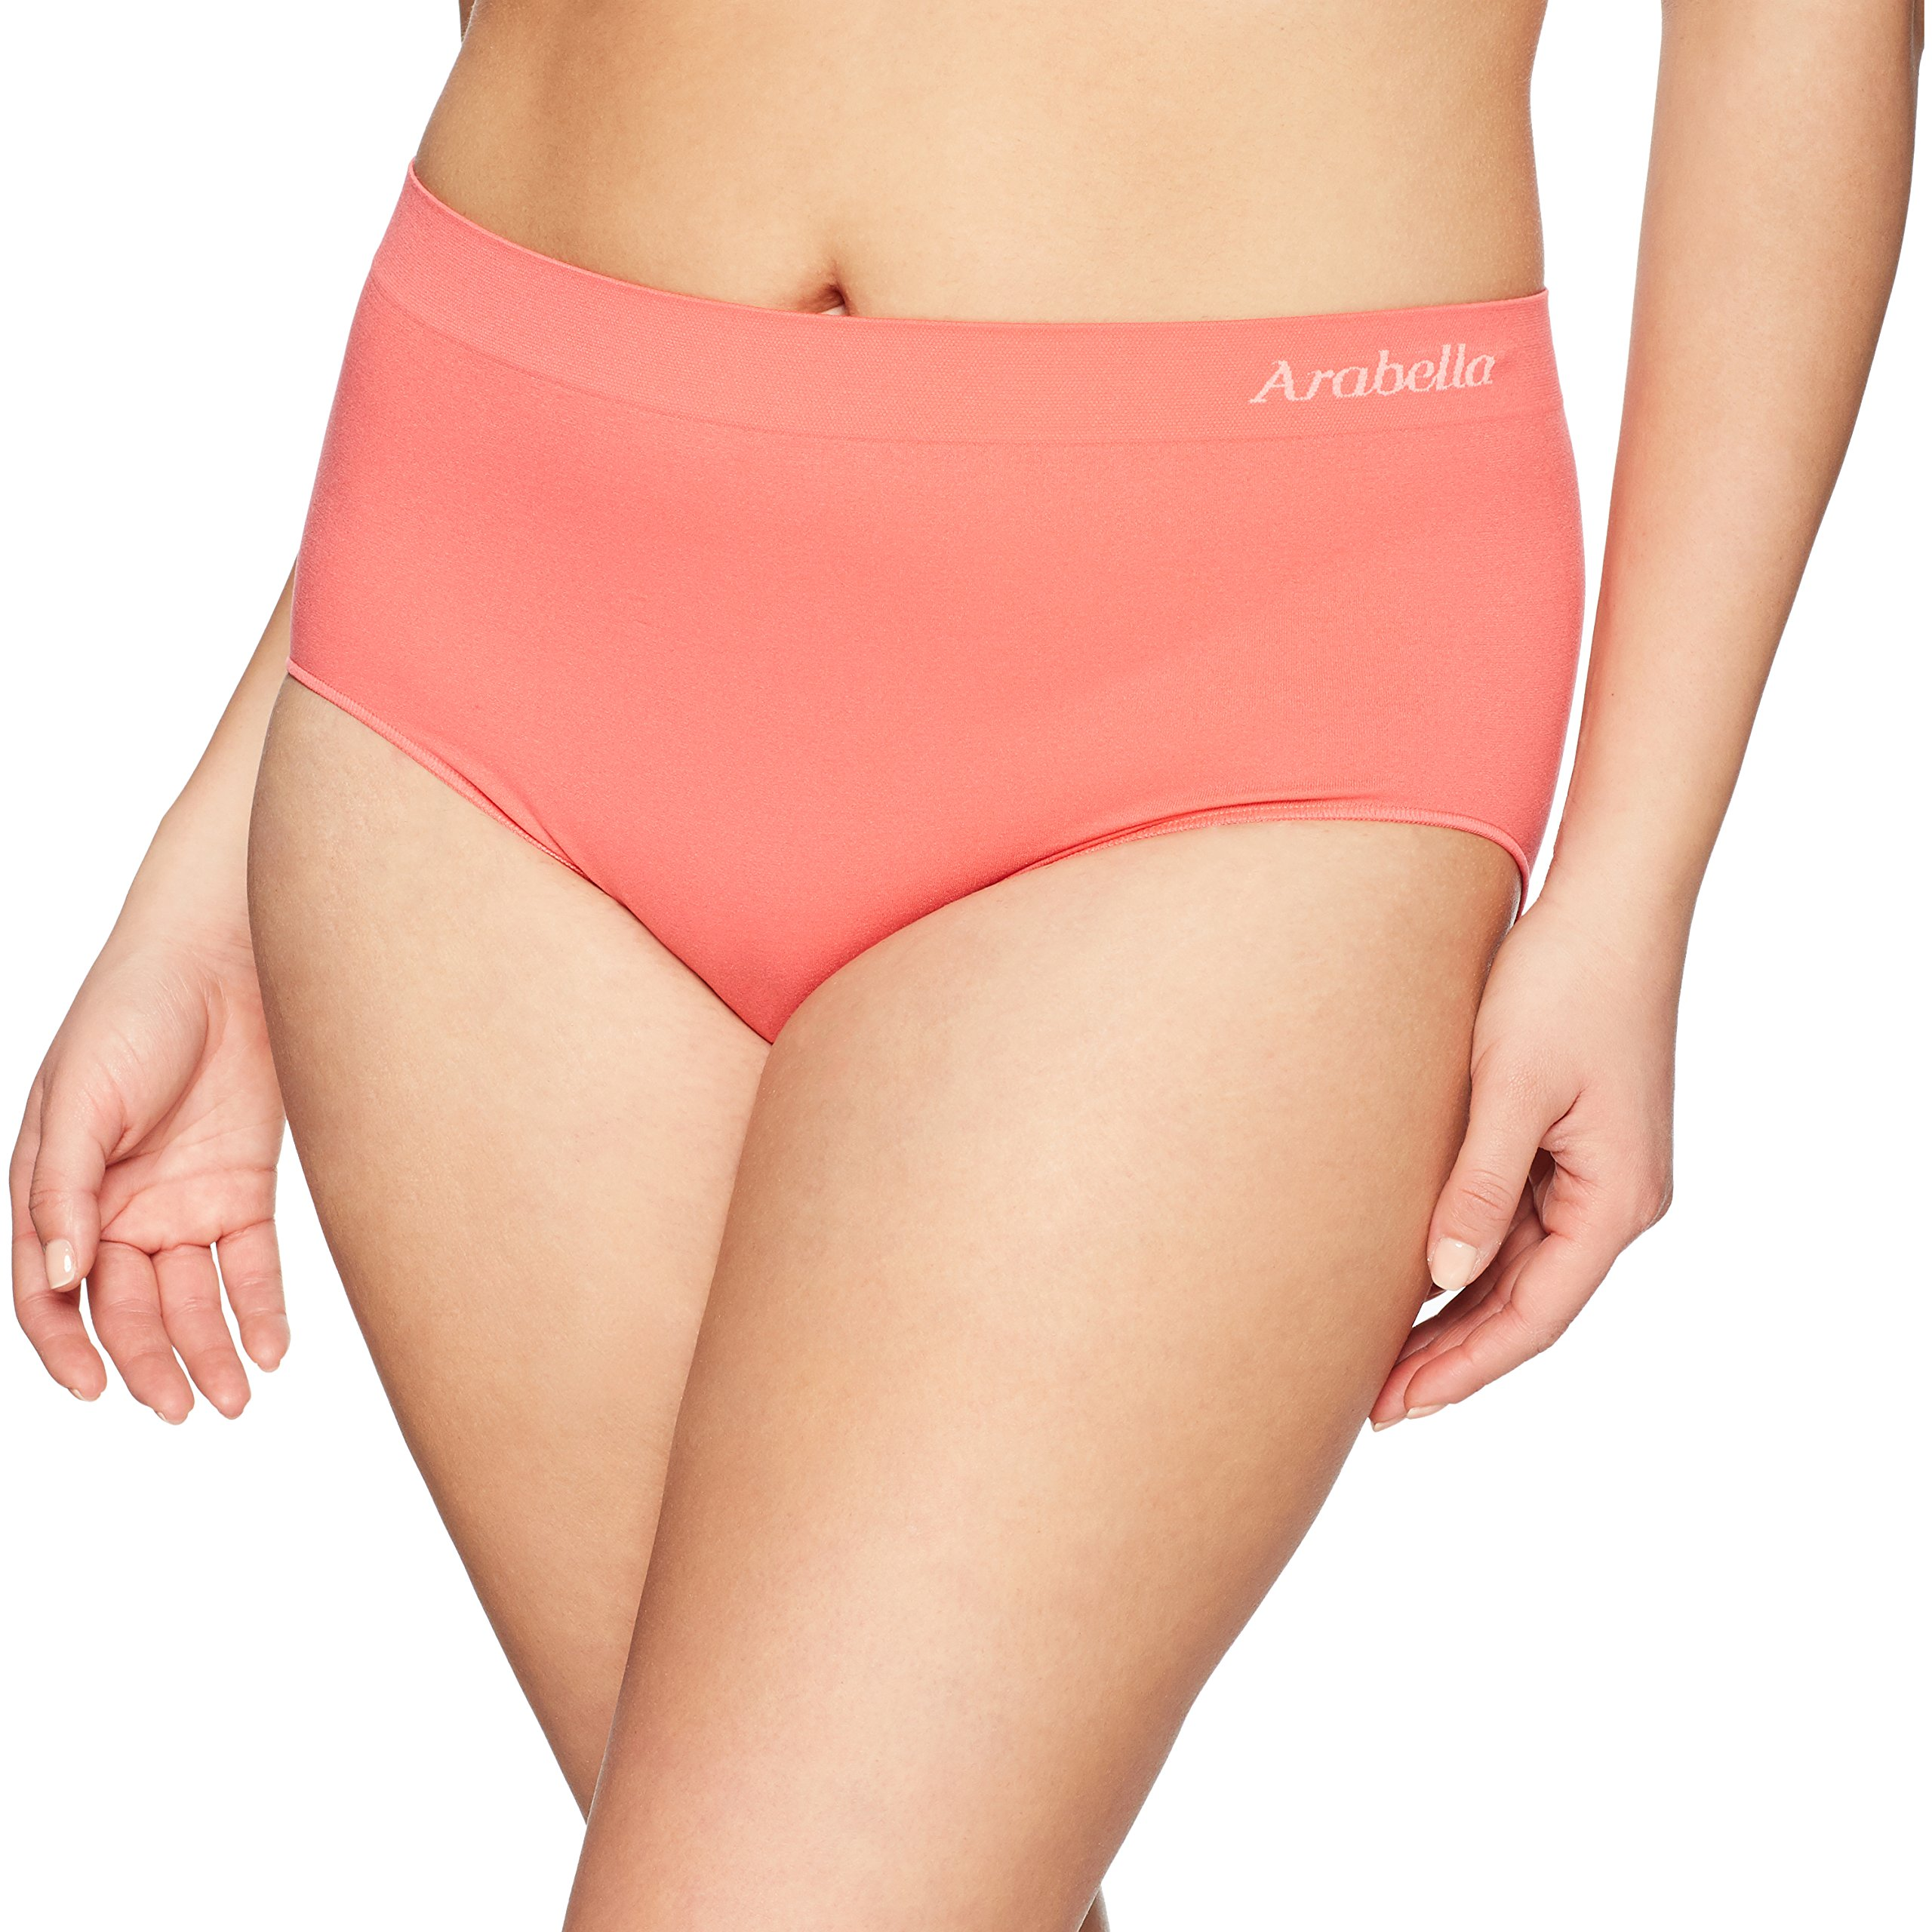 Amazon Brand - Arabella Women's Seamless Brief Panty, 3 Pack